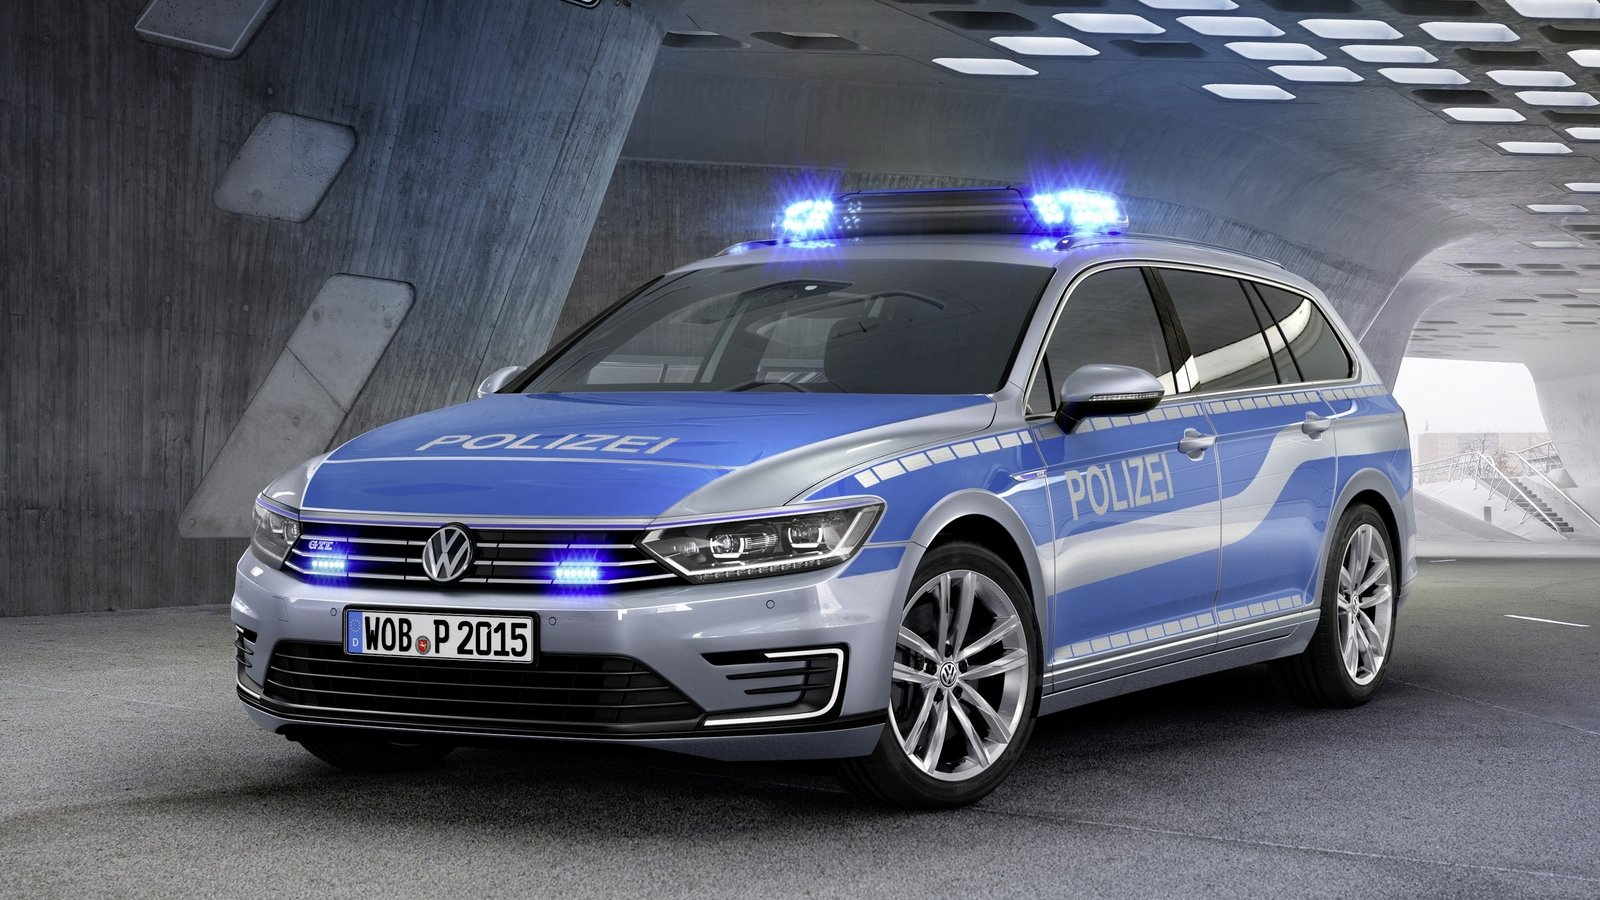 2015 volkswagen passat gte police car picture 600401 car review top speed. Black Bedroom Furniture Sets. Home Design Ideas